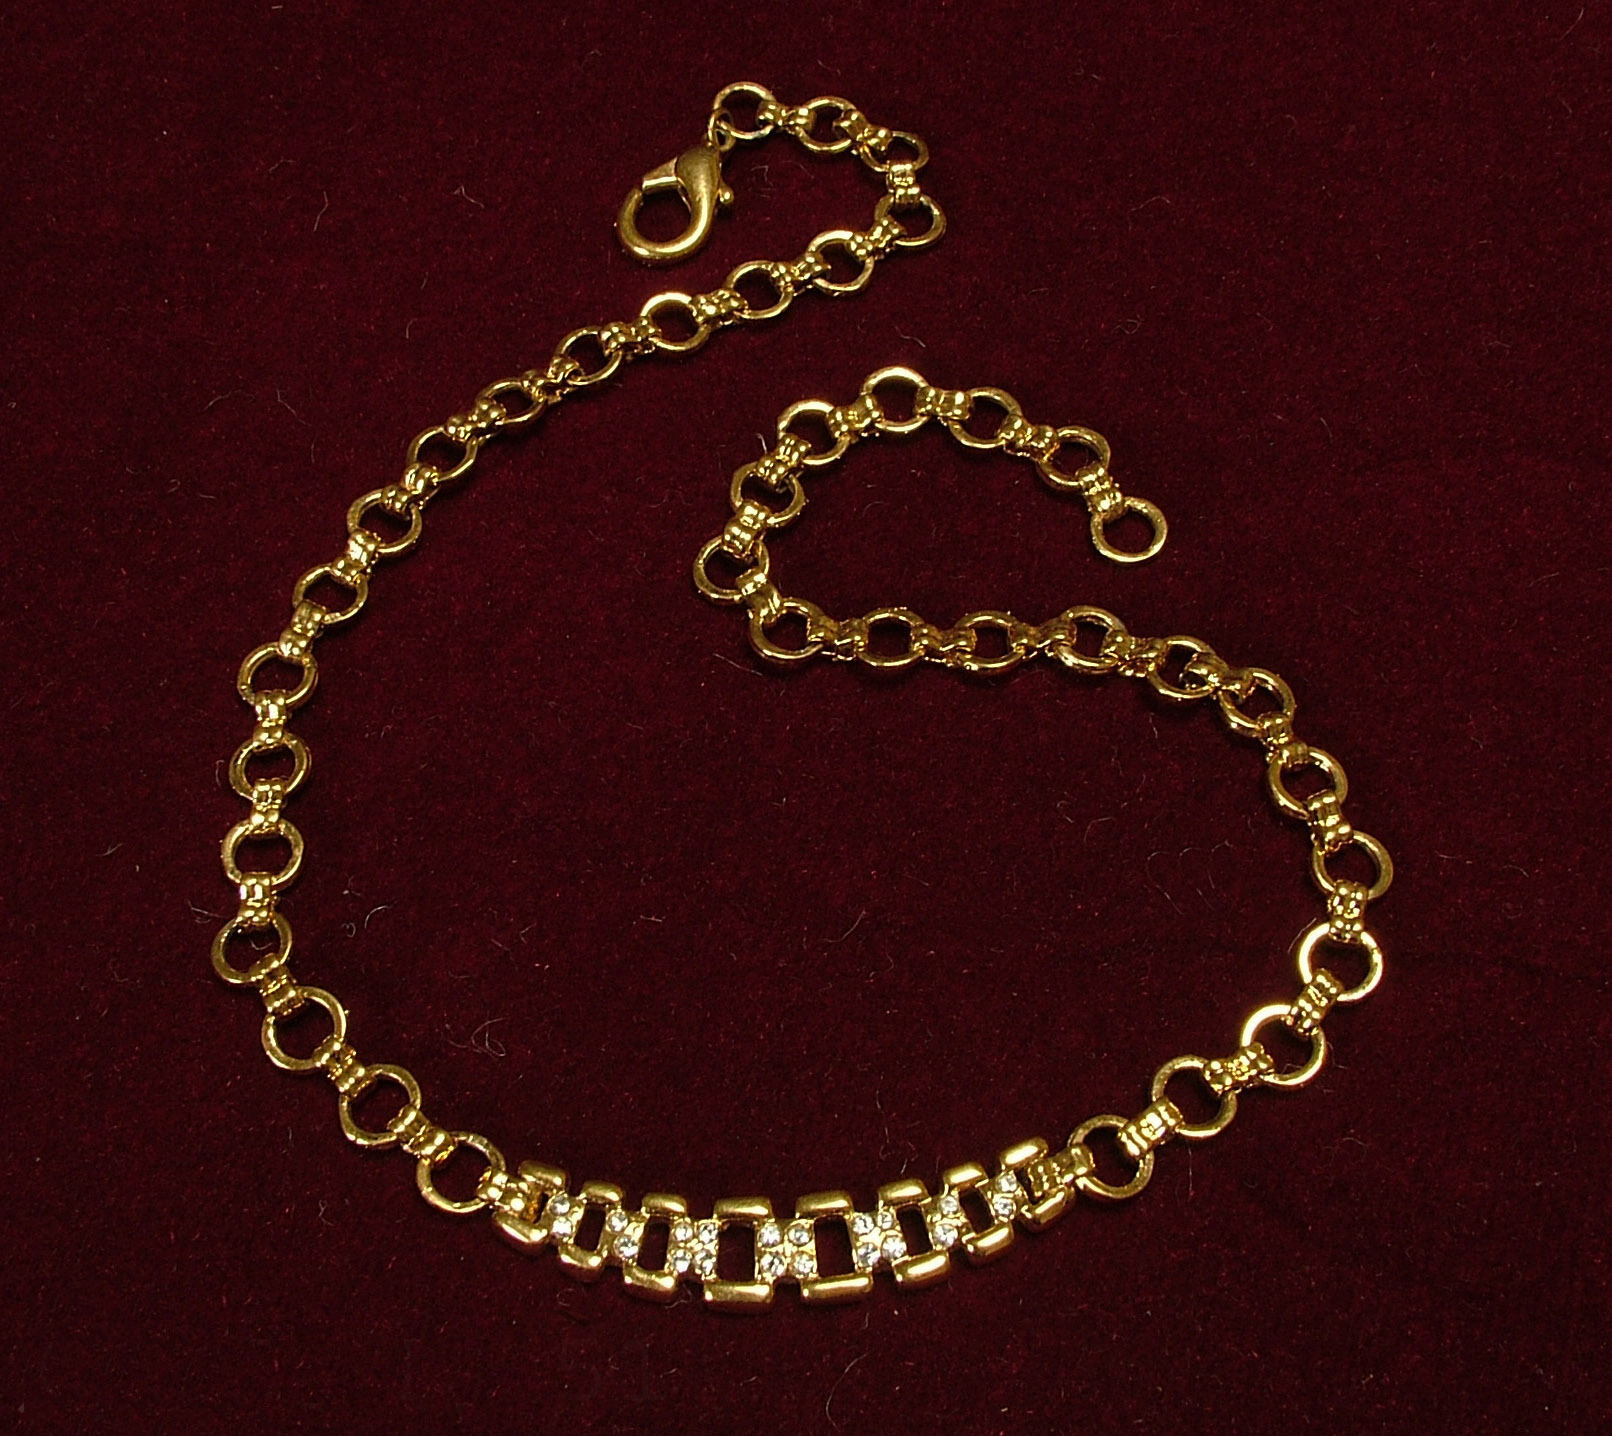 itm clasp link men real solid inch cuban chain necklace chains w miami gold